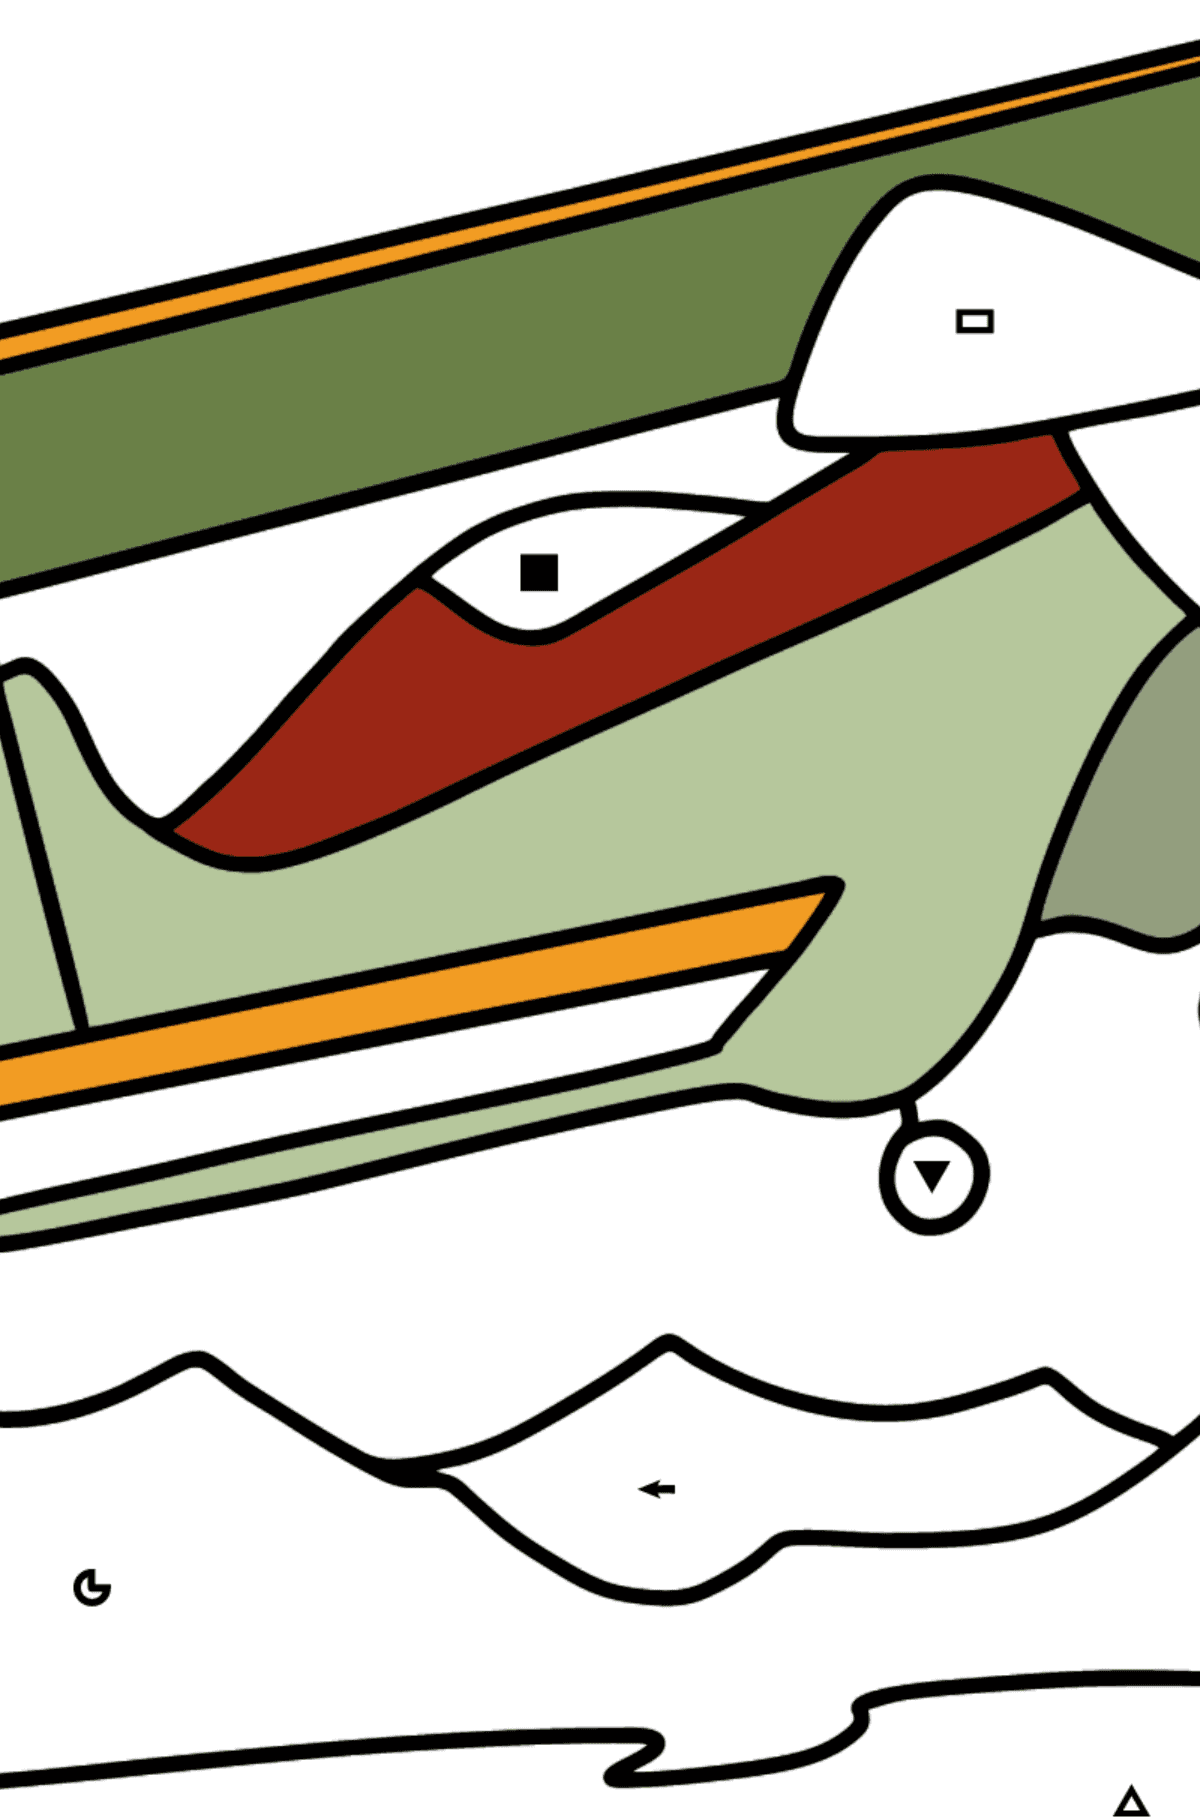 Coloring page - Light Airplane flies Over Mountains - Coloring by Symbols and Geometric Shapes for Kids